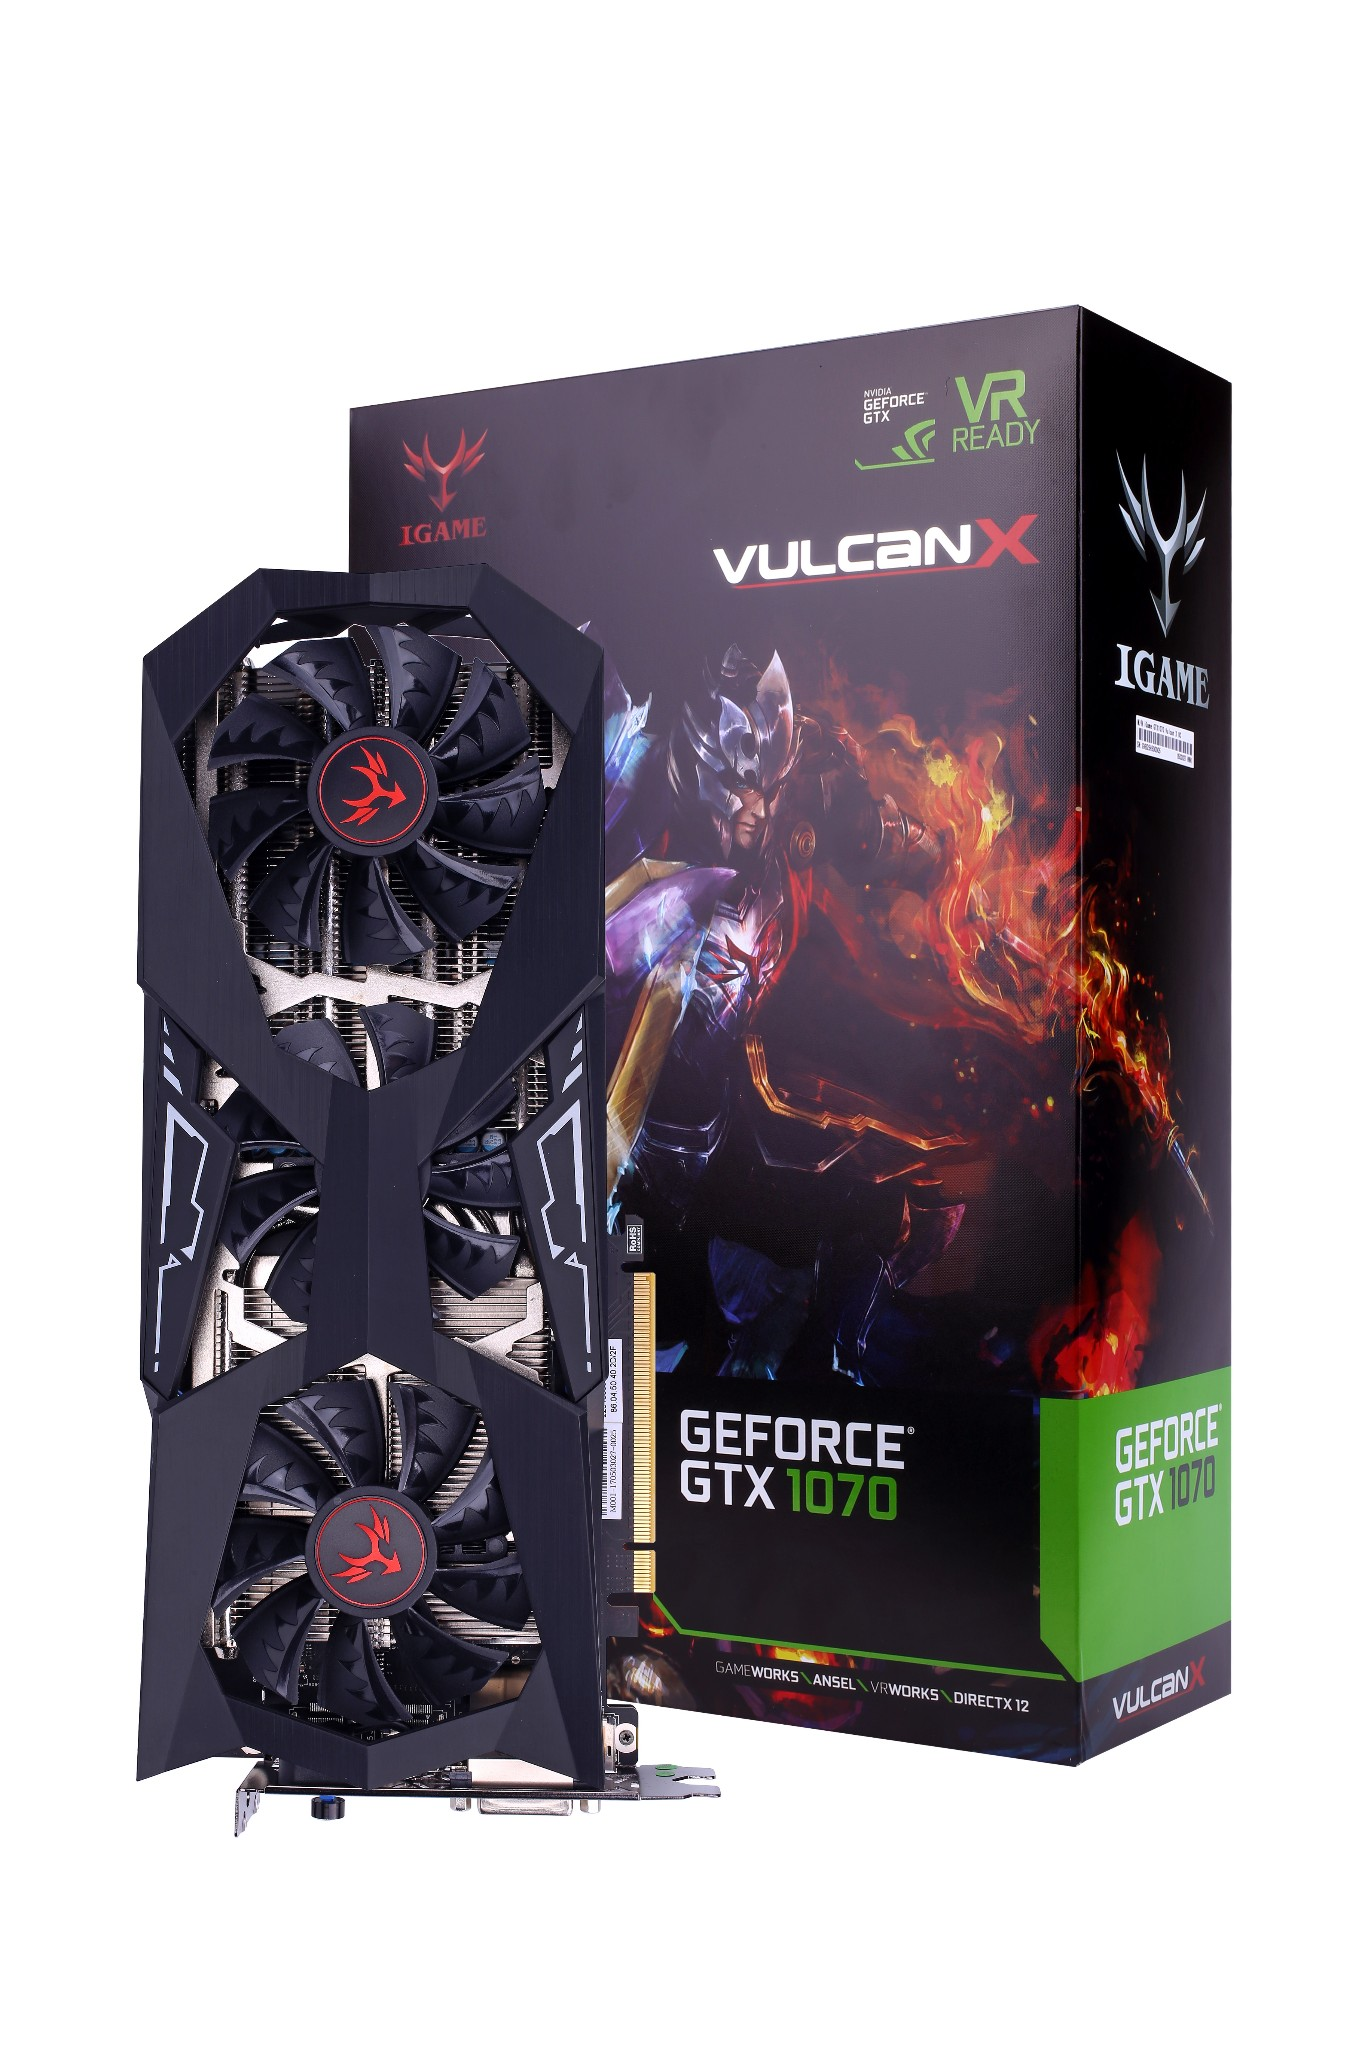 COLORFUL NVIDIA GEFORCE IGAME GTX 1070 TI VULCAN X